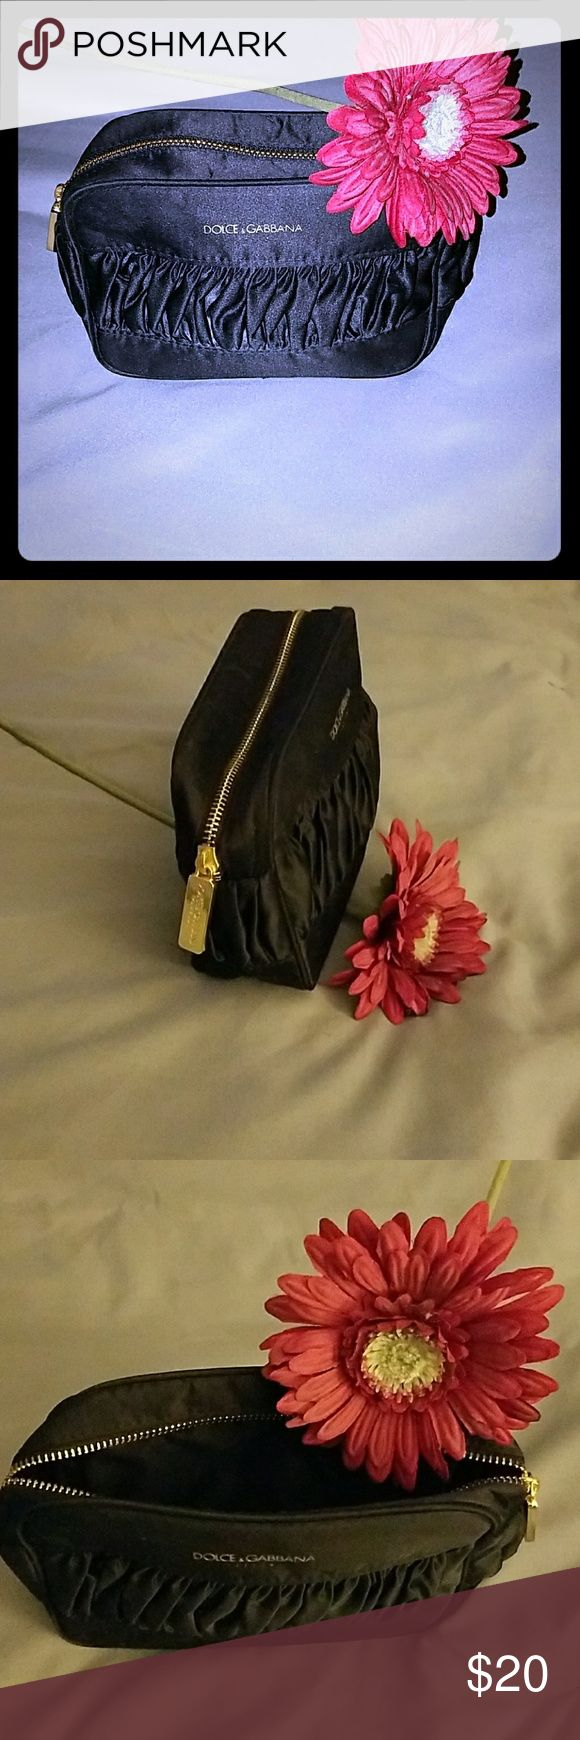 DOLCE & GABBANA SMALL COSMETIC BAG Small little bag that you can use for makeup bag or a clutch 👝  never be use Dolce & Gabbana Bags Cosmetic Bags & Cases